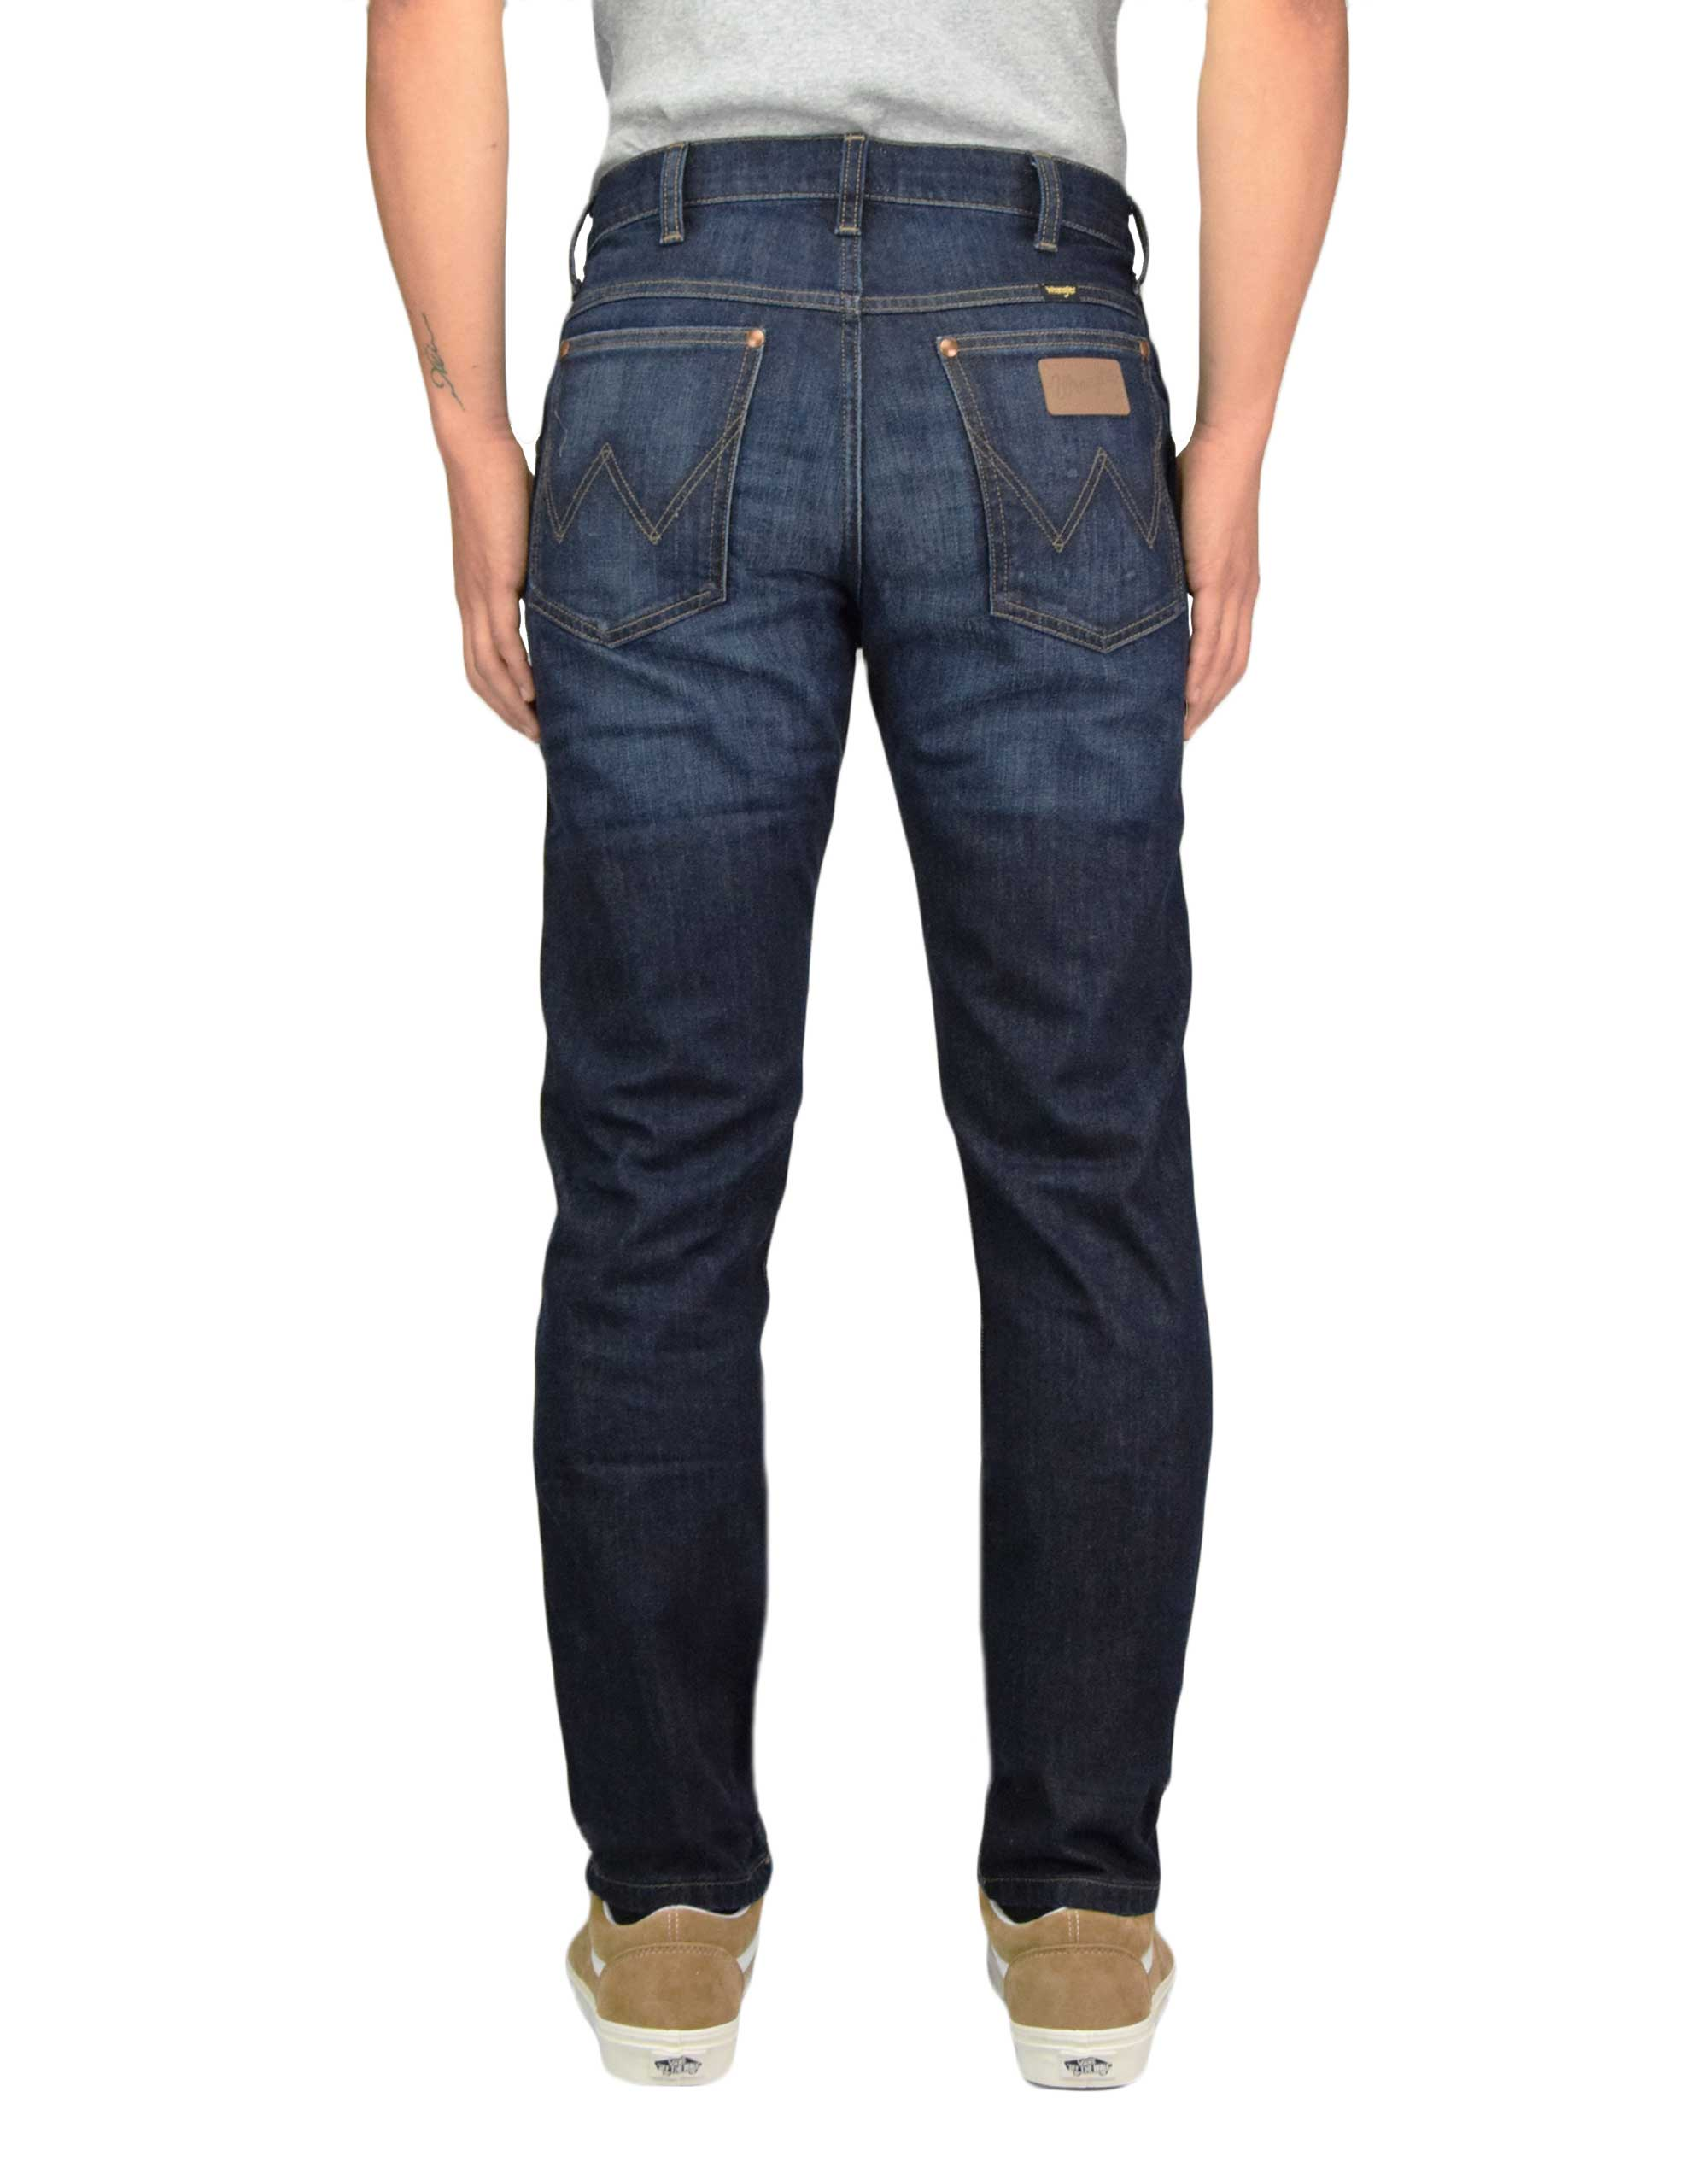 Wrangler Icons 11Mwz Original Slim (W1MZXG313) Blue Bone